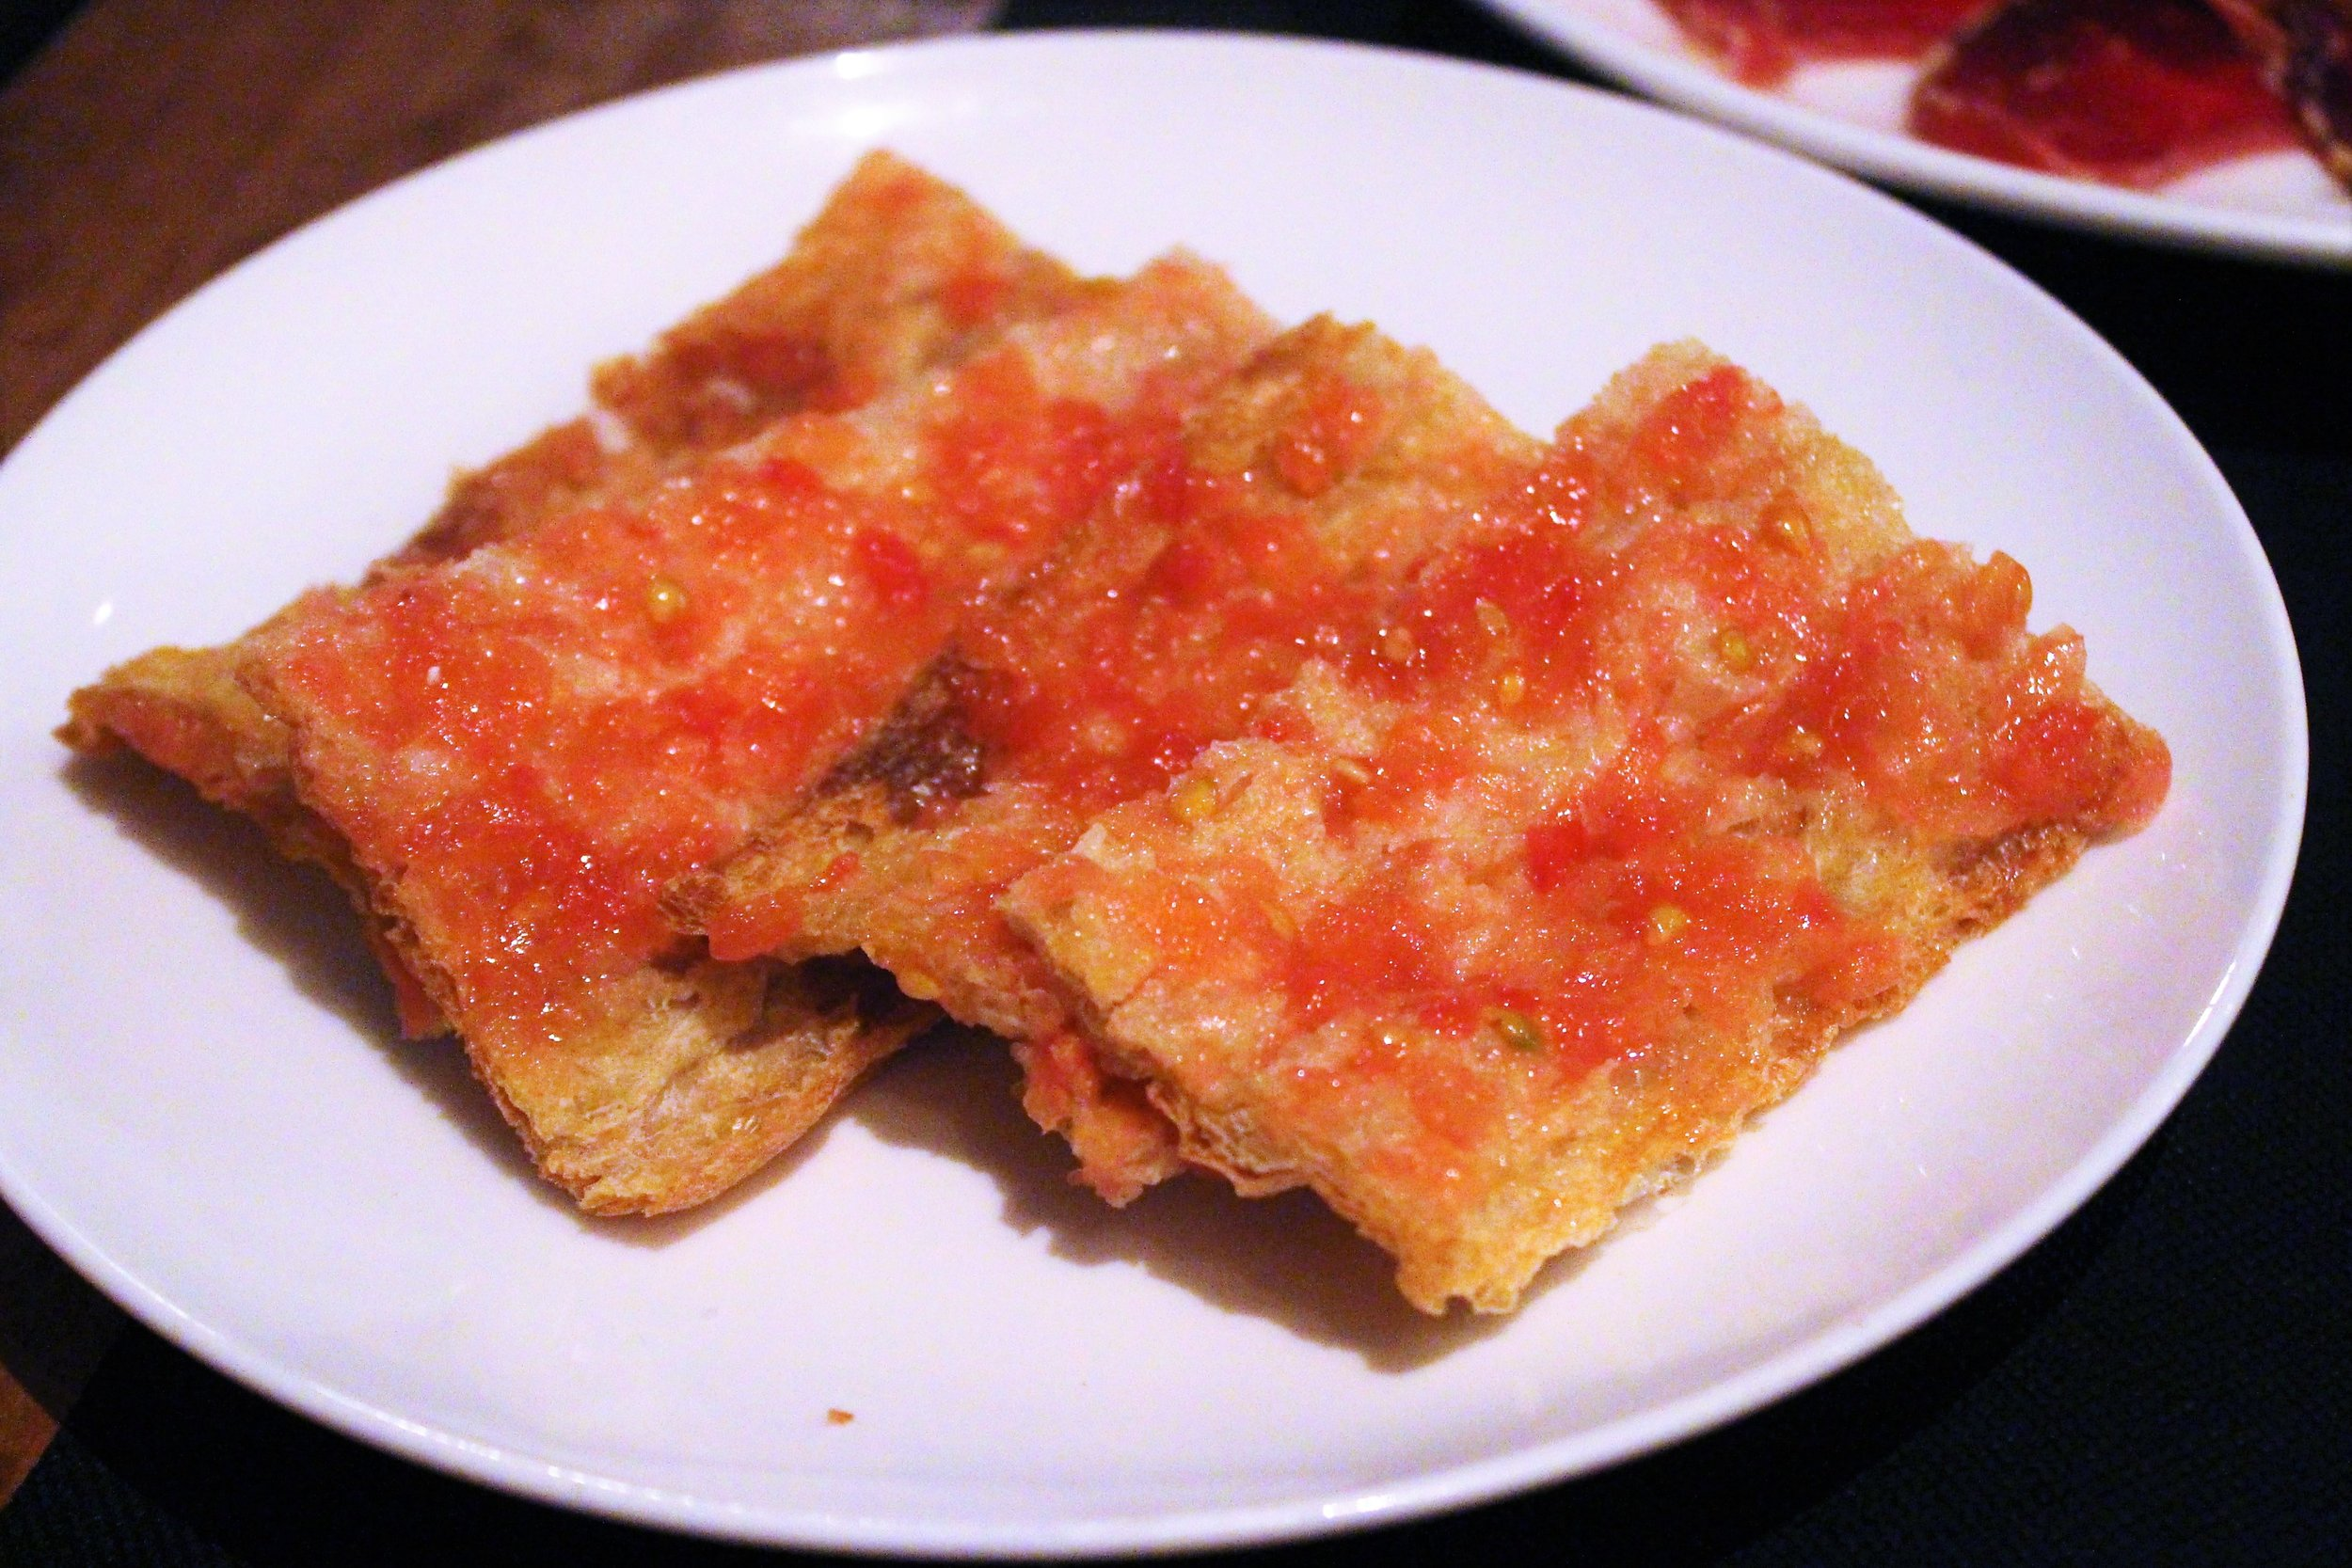 Toasted Bread with Tomato (Pan Con Tomate) at Eldiset in Barcelona